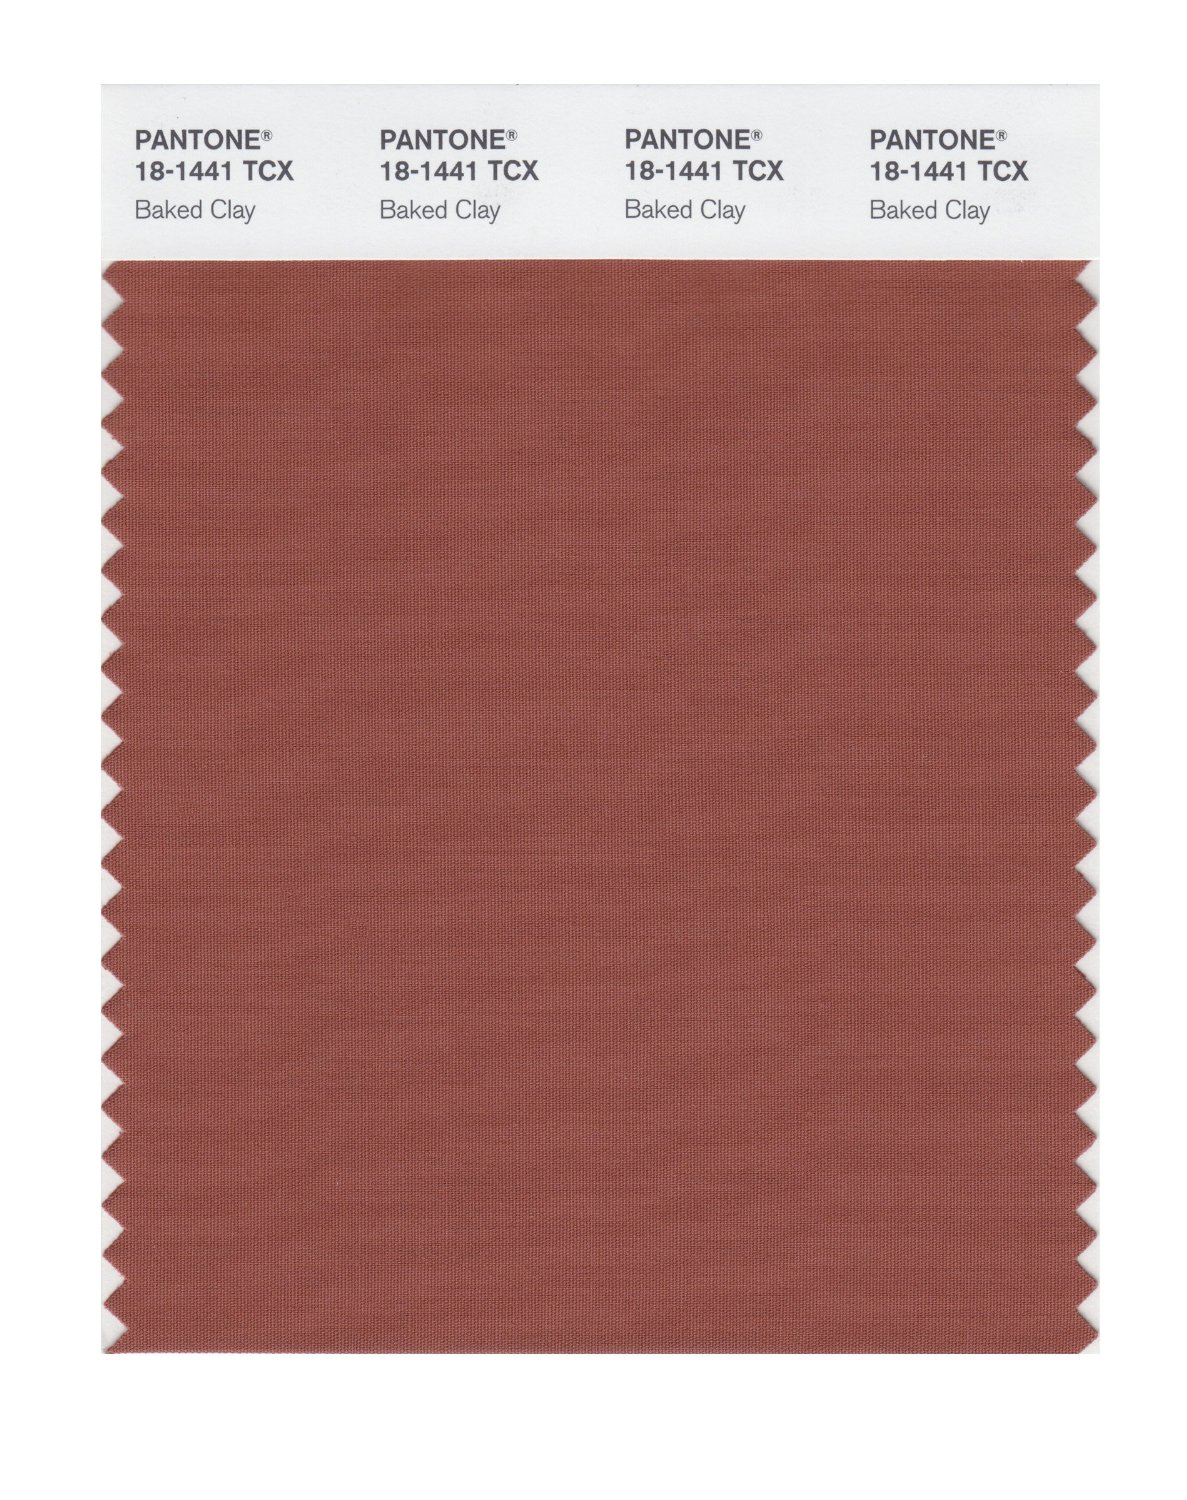 Pantone Smart Swatch 18-1441 Baked Clay